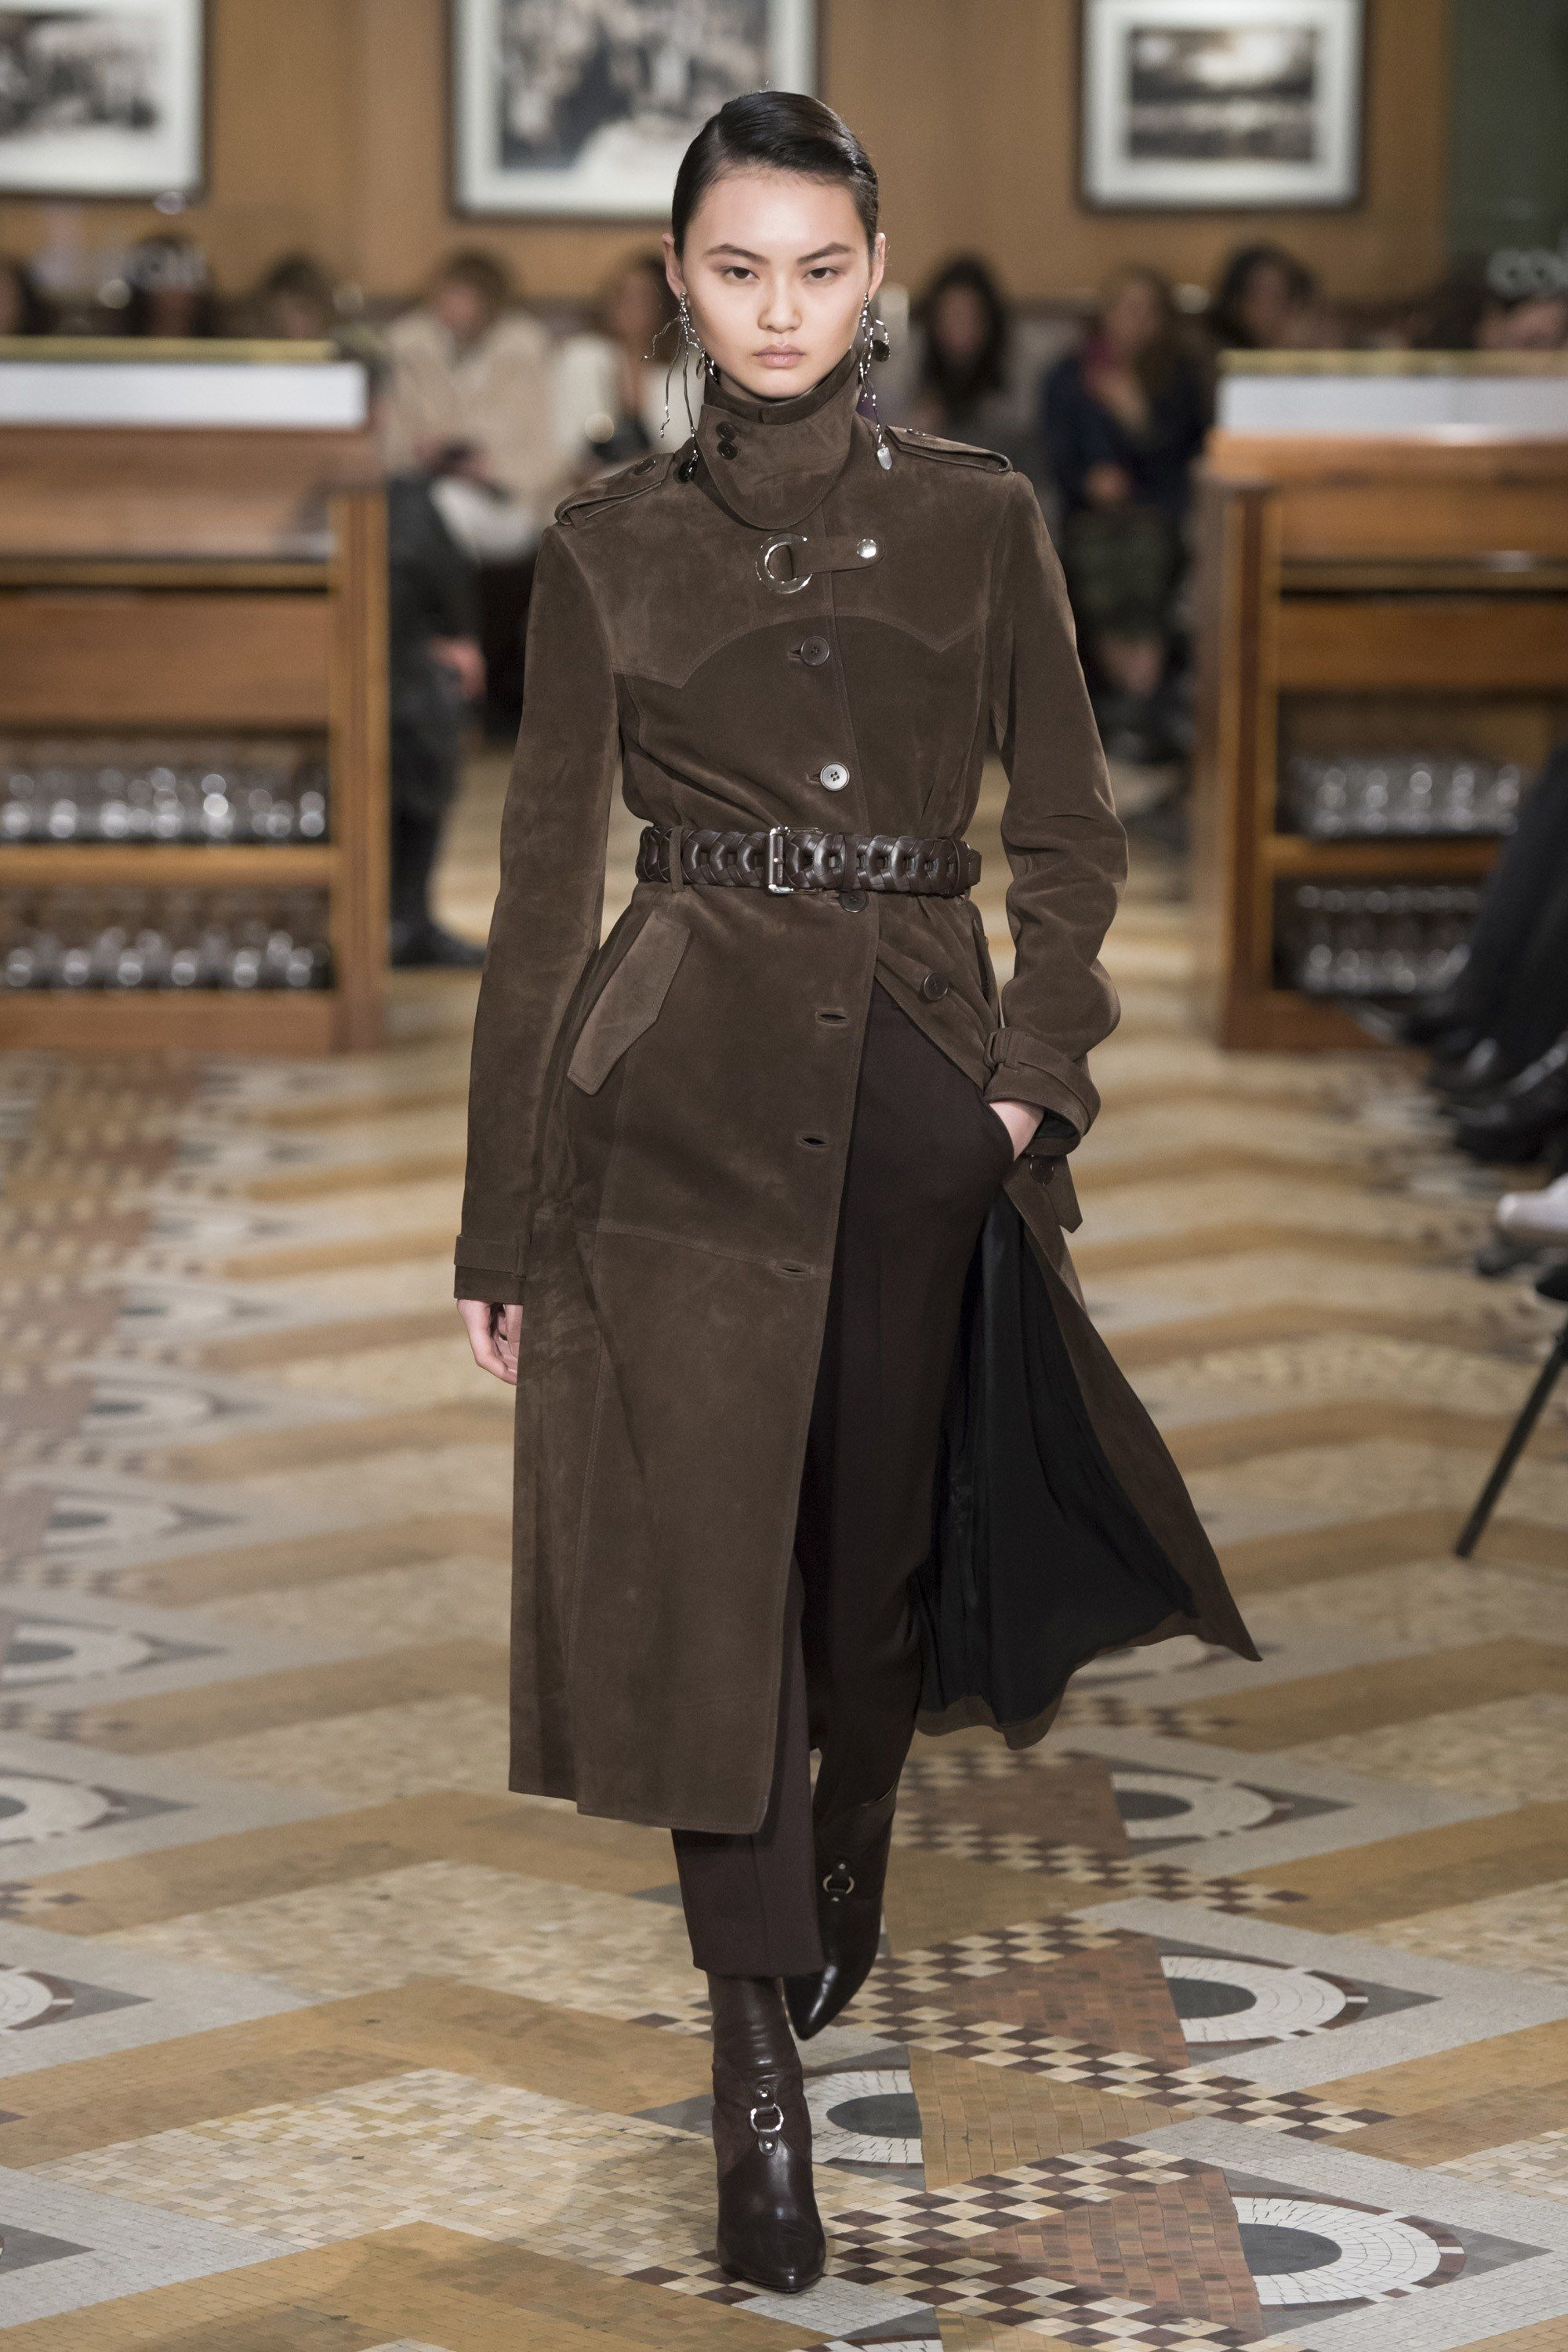 The biggest fashion trends from the fall runway in